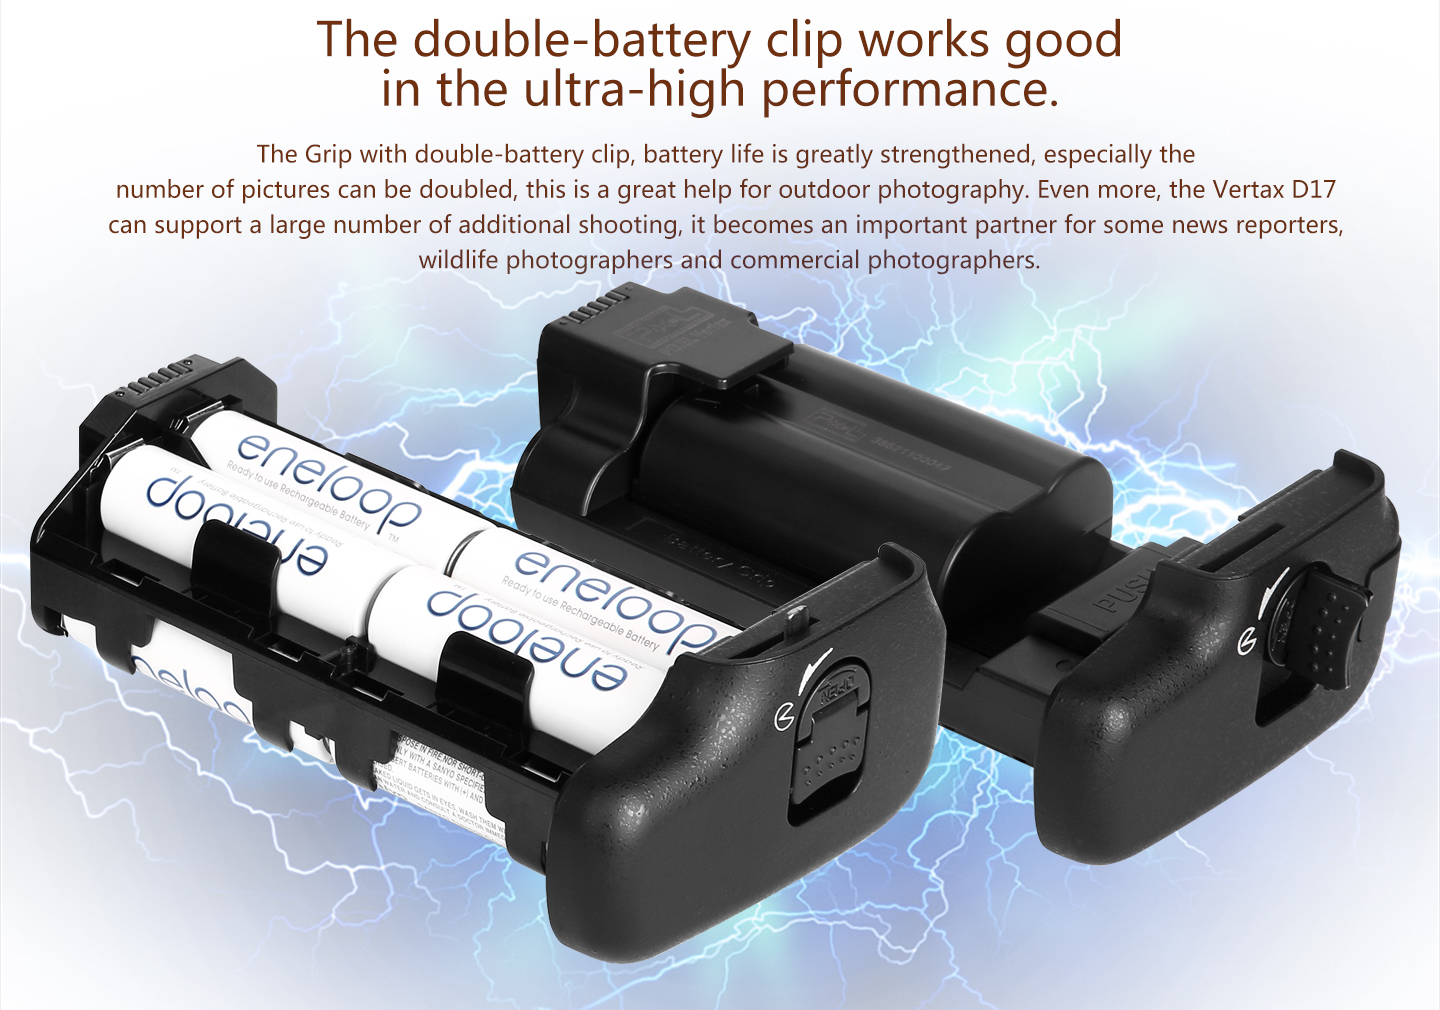 The double-battery clip works good in the ultra-high performance